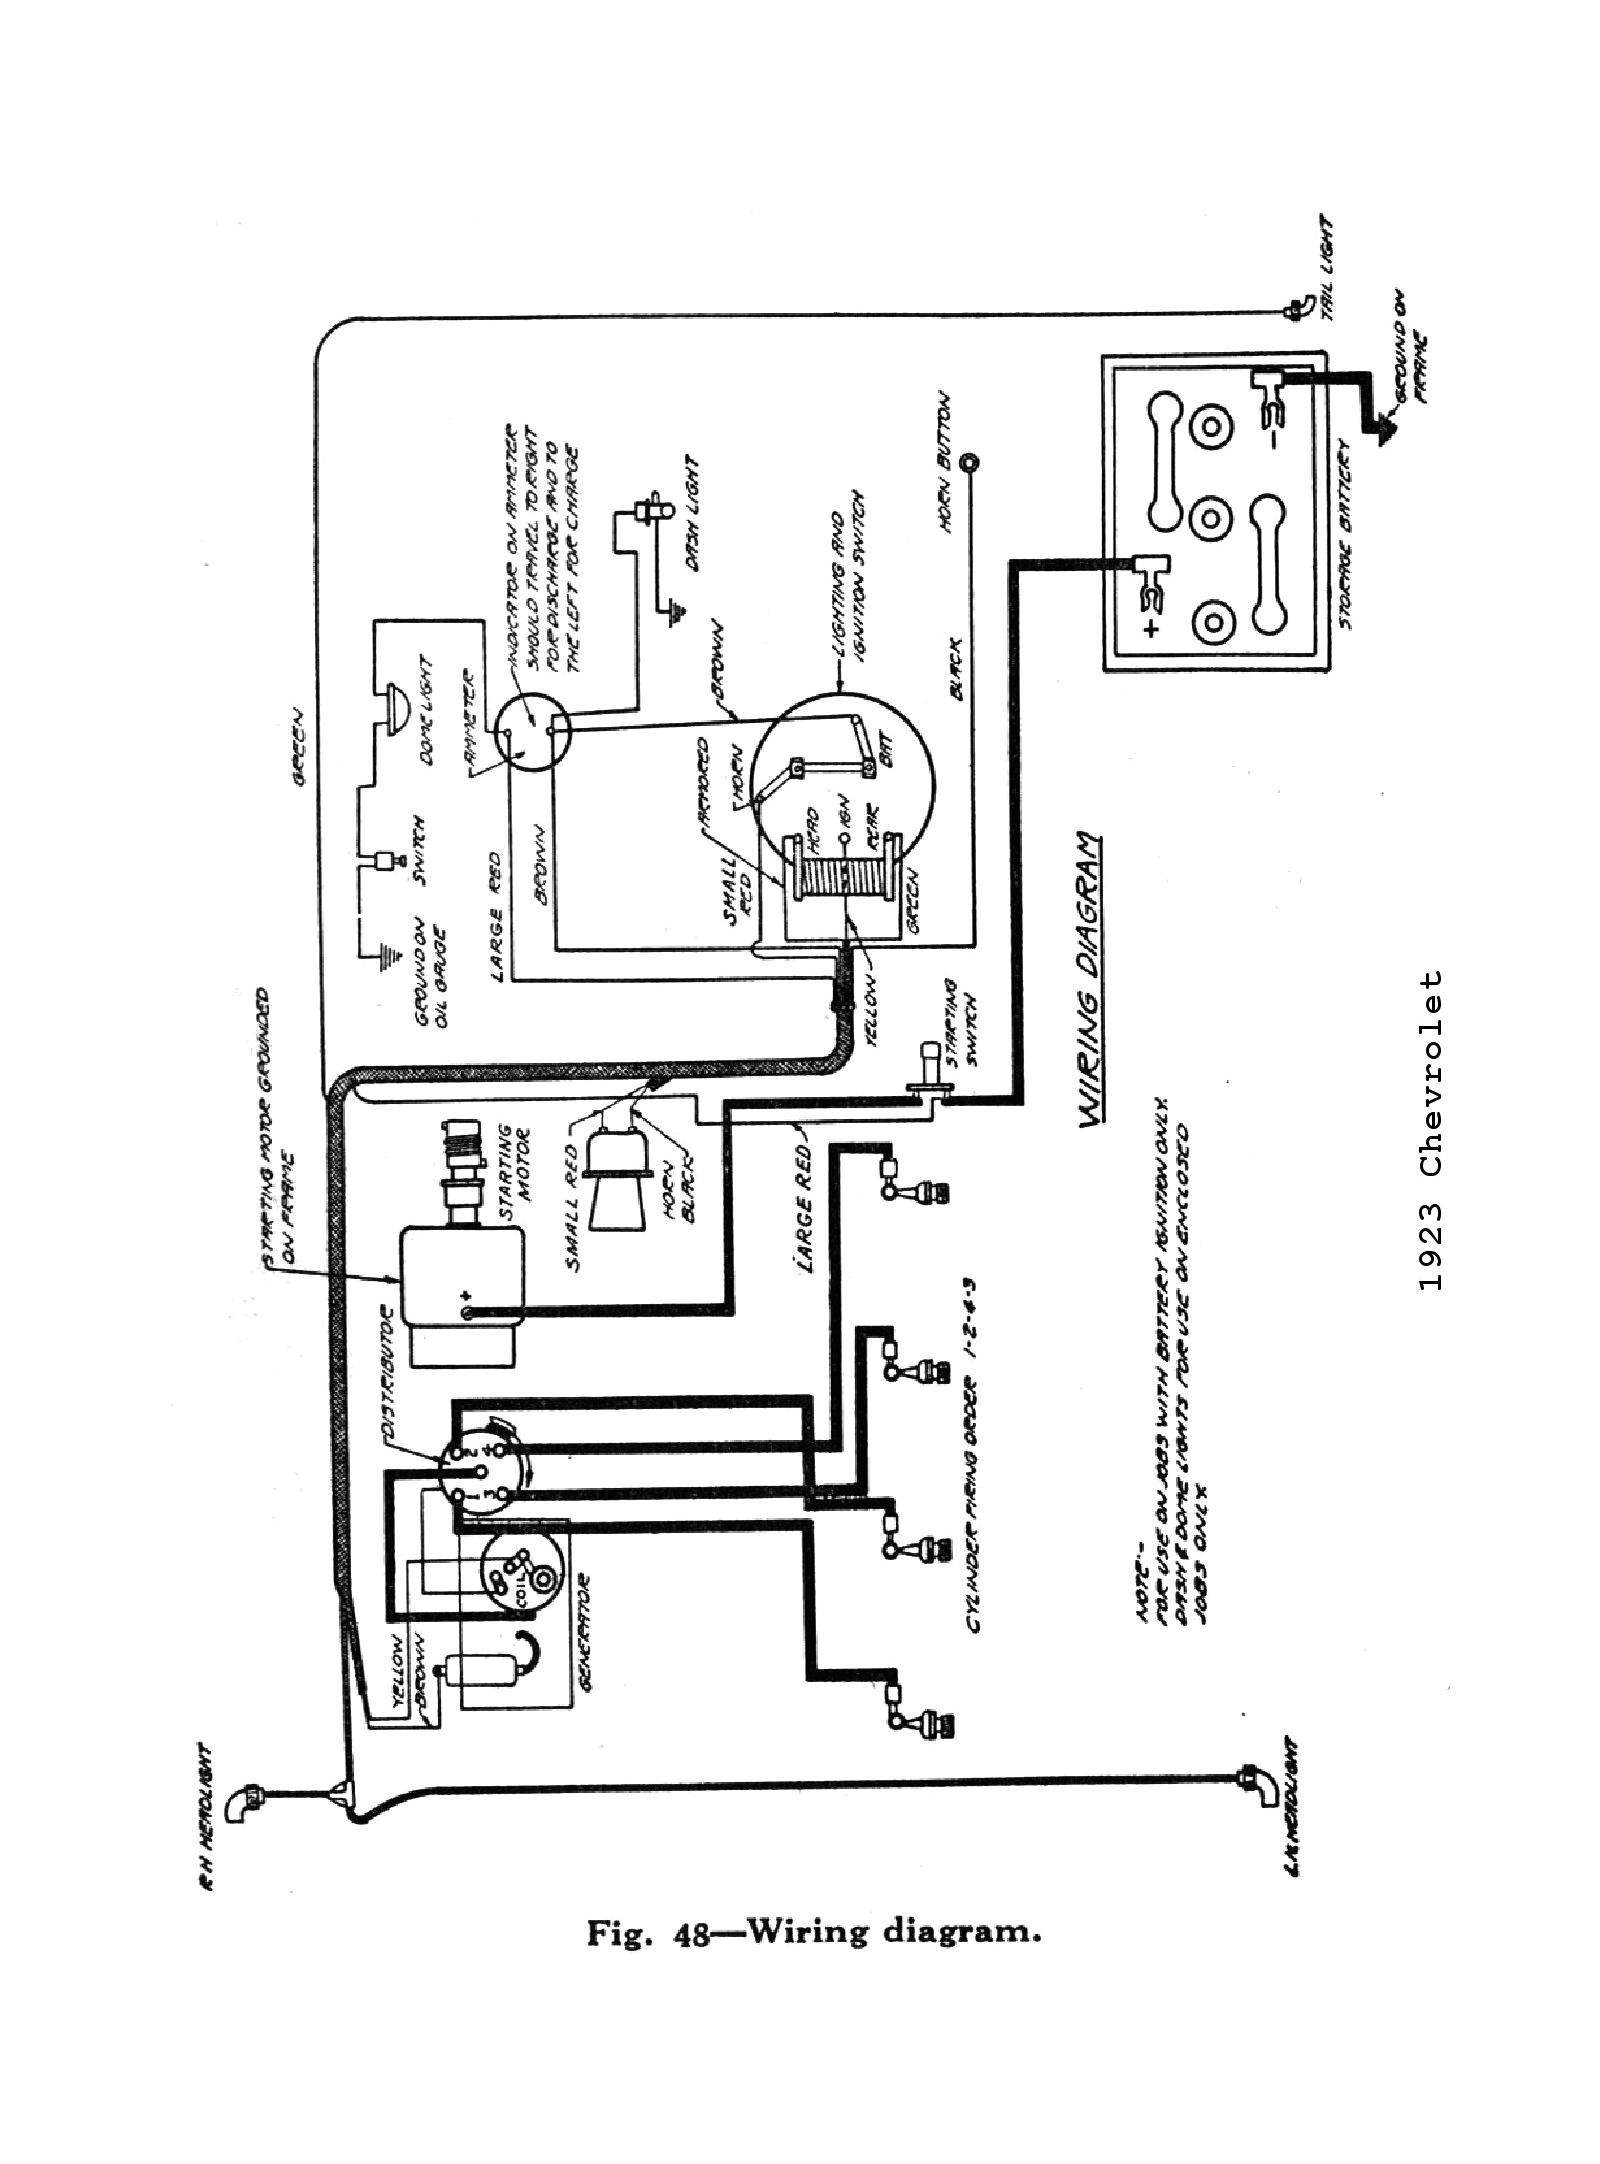 wiring diagram for 1959 chevy truck wiring diagram blog truck wiring harness diagram 1959 chevy truck